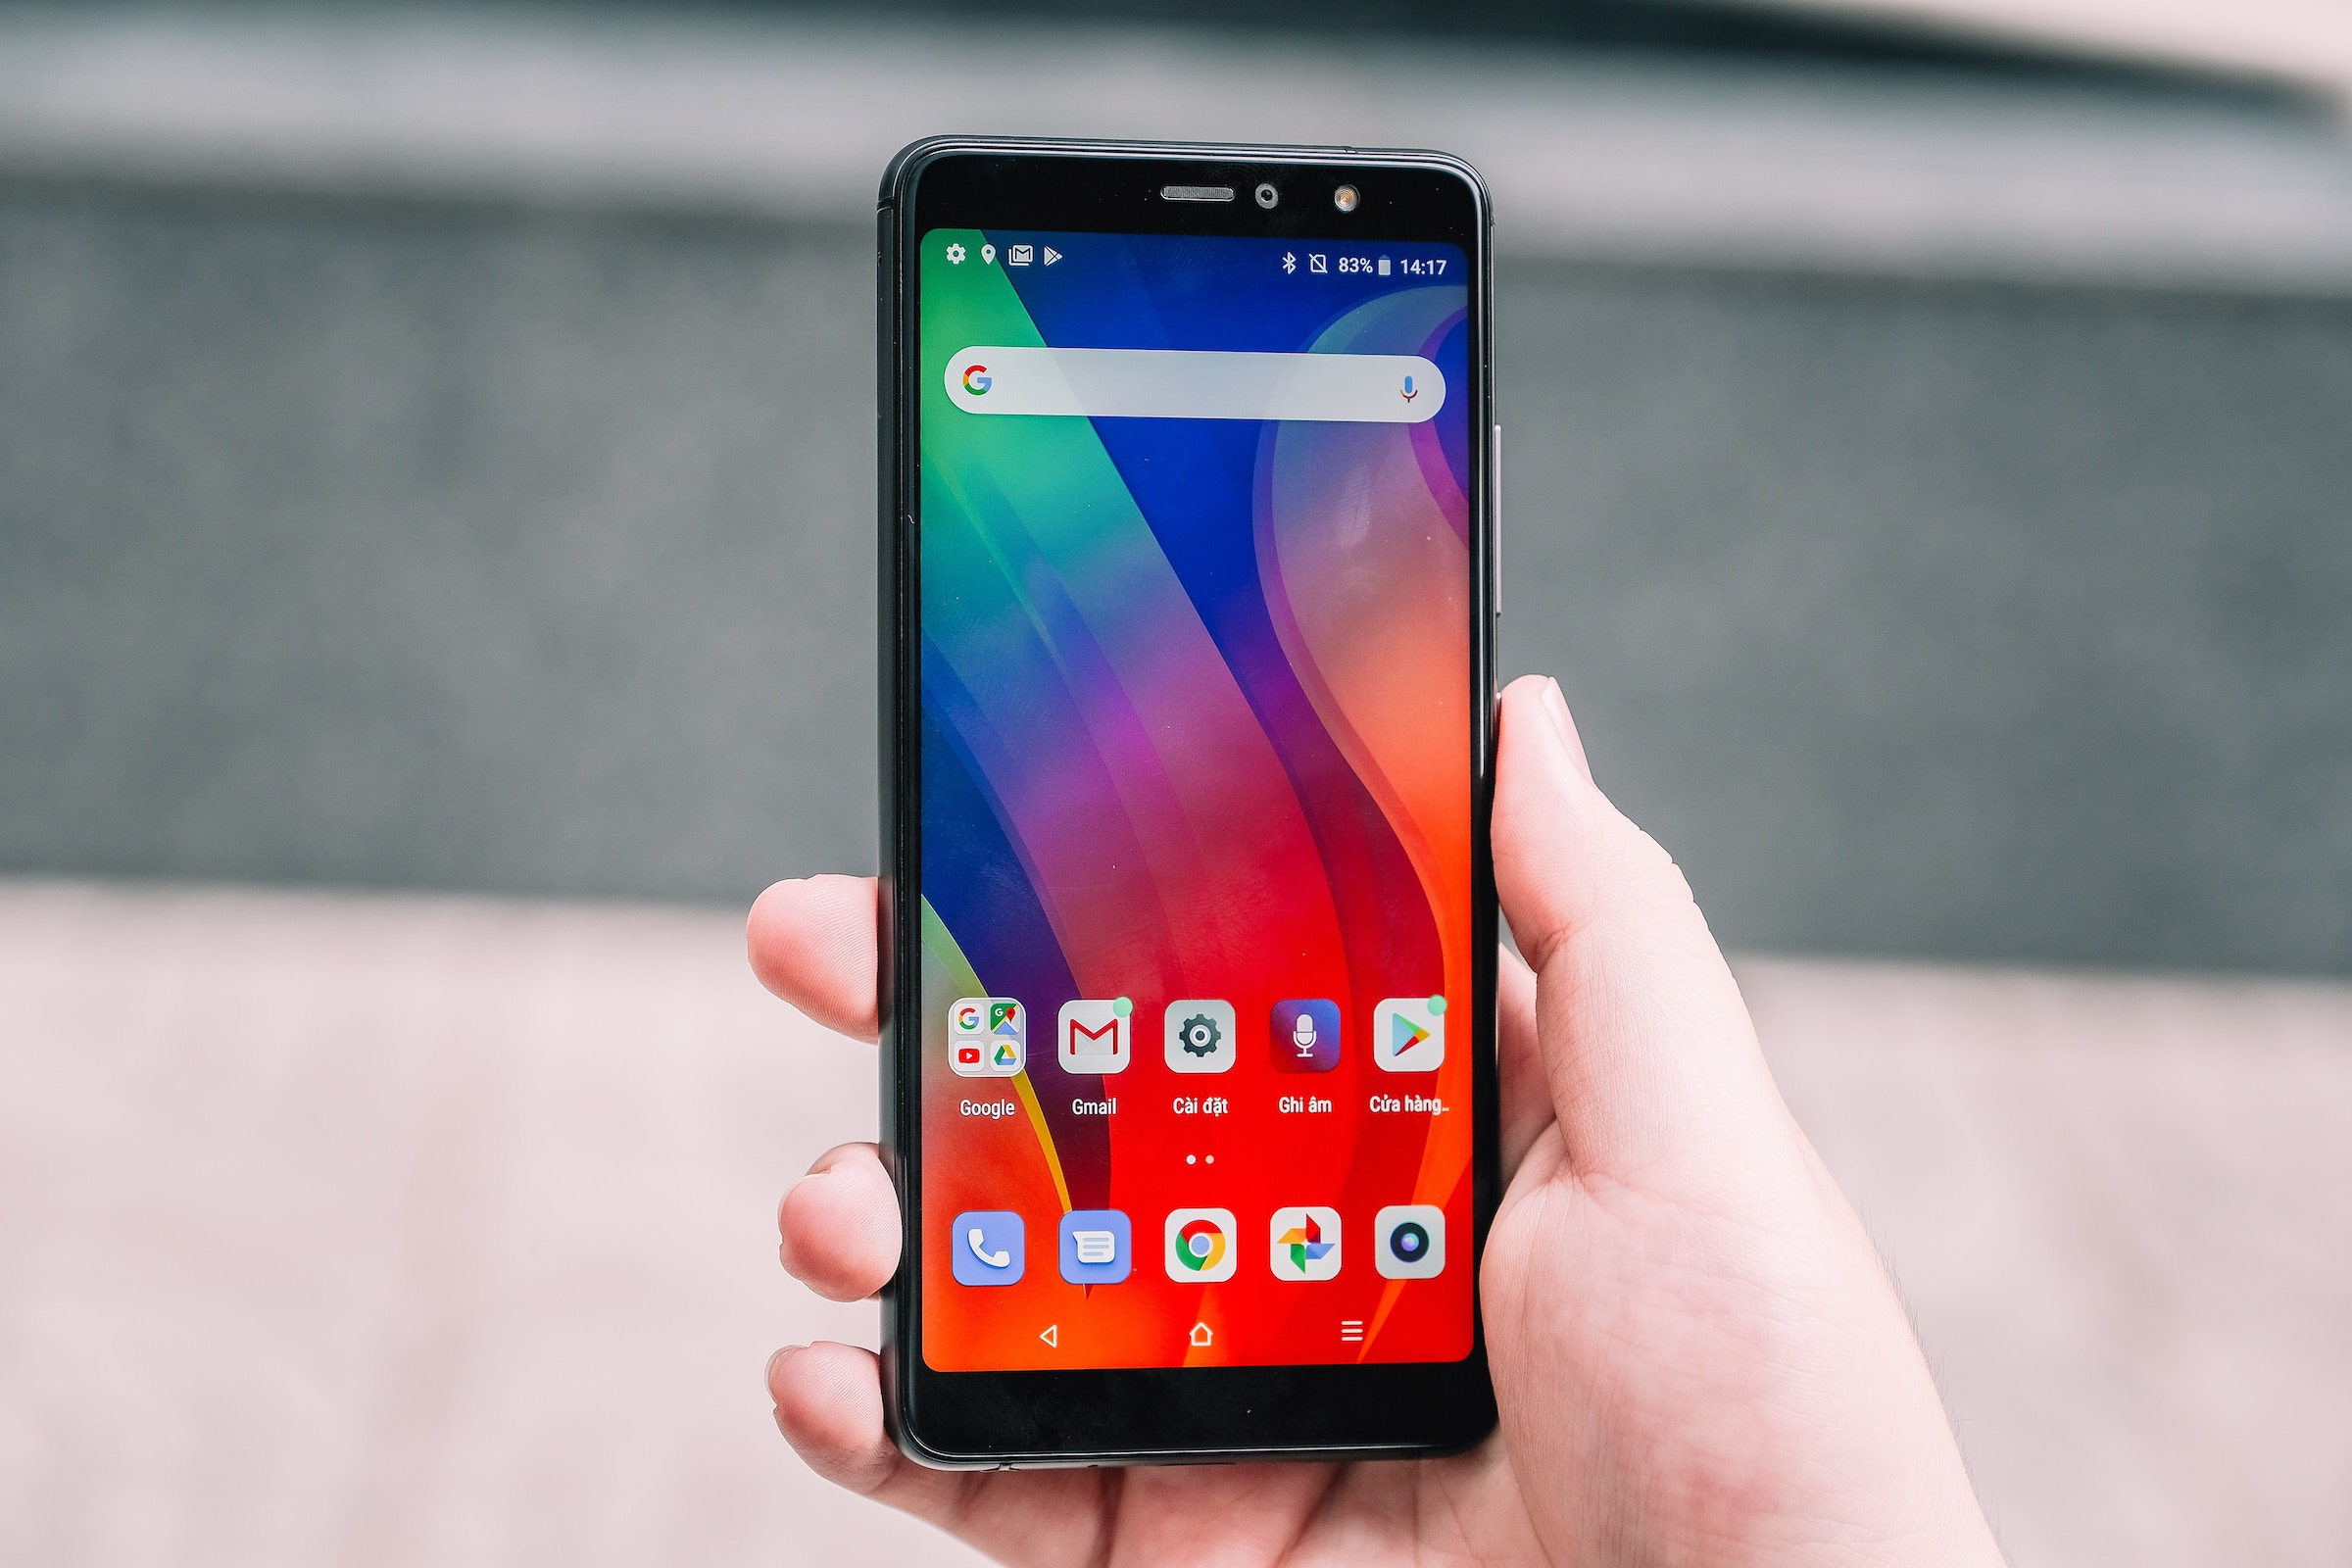 Phone repair prices from Android manufacturers